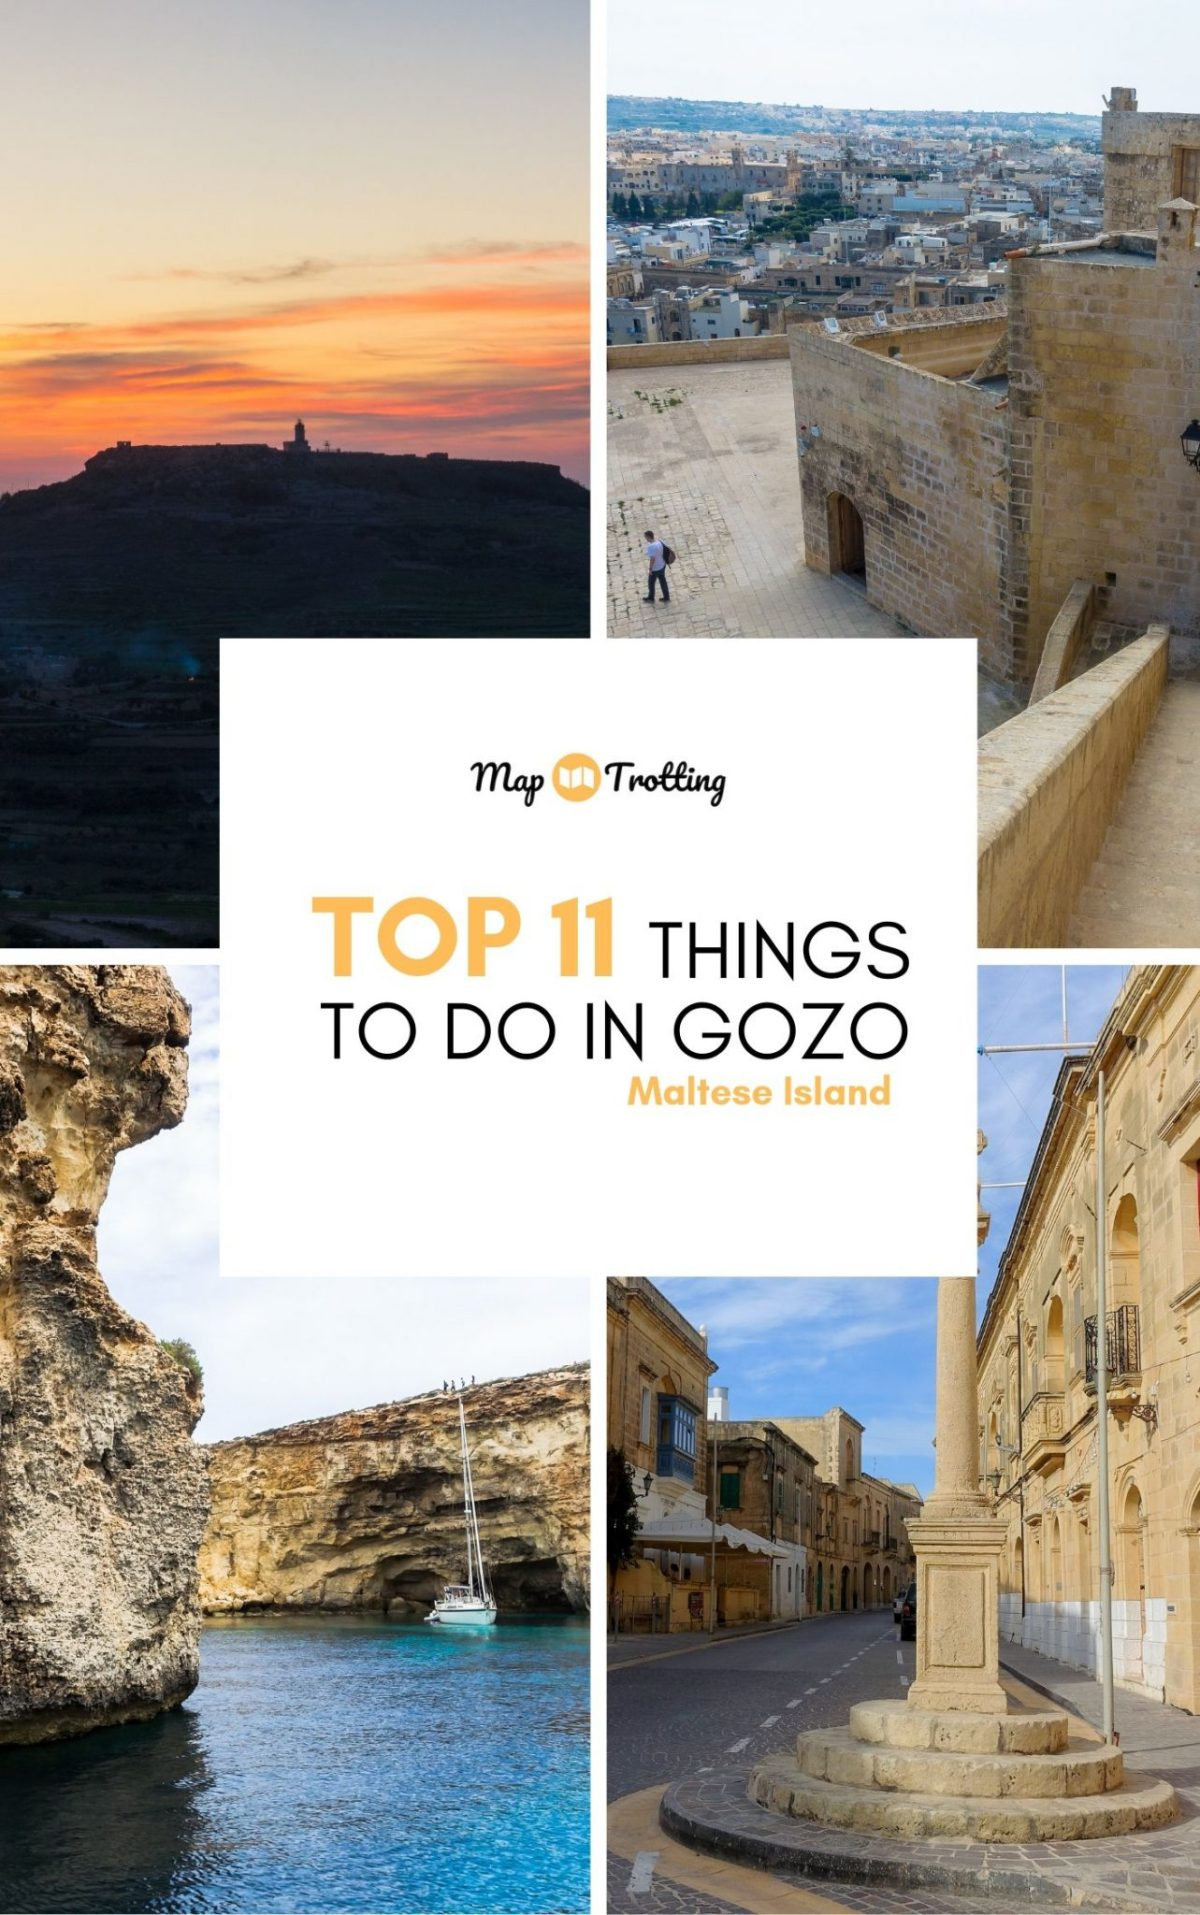 Things to do in Gozo pin features a Gozitan village square, tall walls of the Cittadella fortress, a white yacht among the tall rocks and sunset over Nadur village.